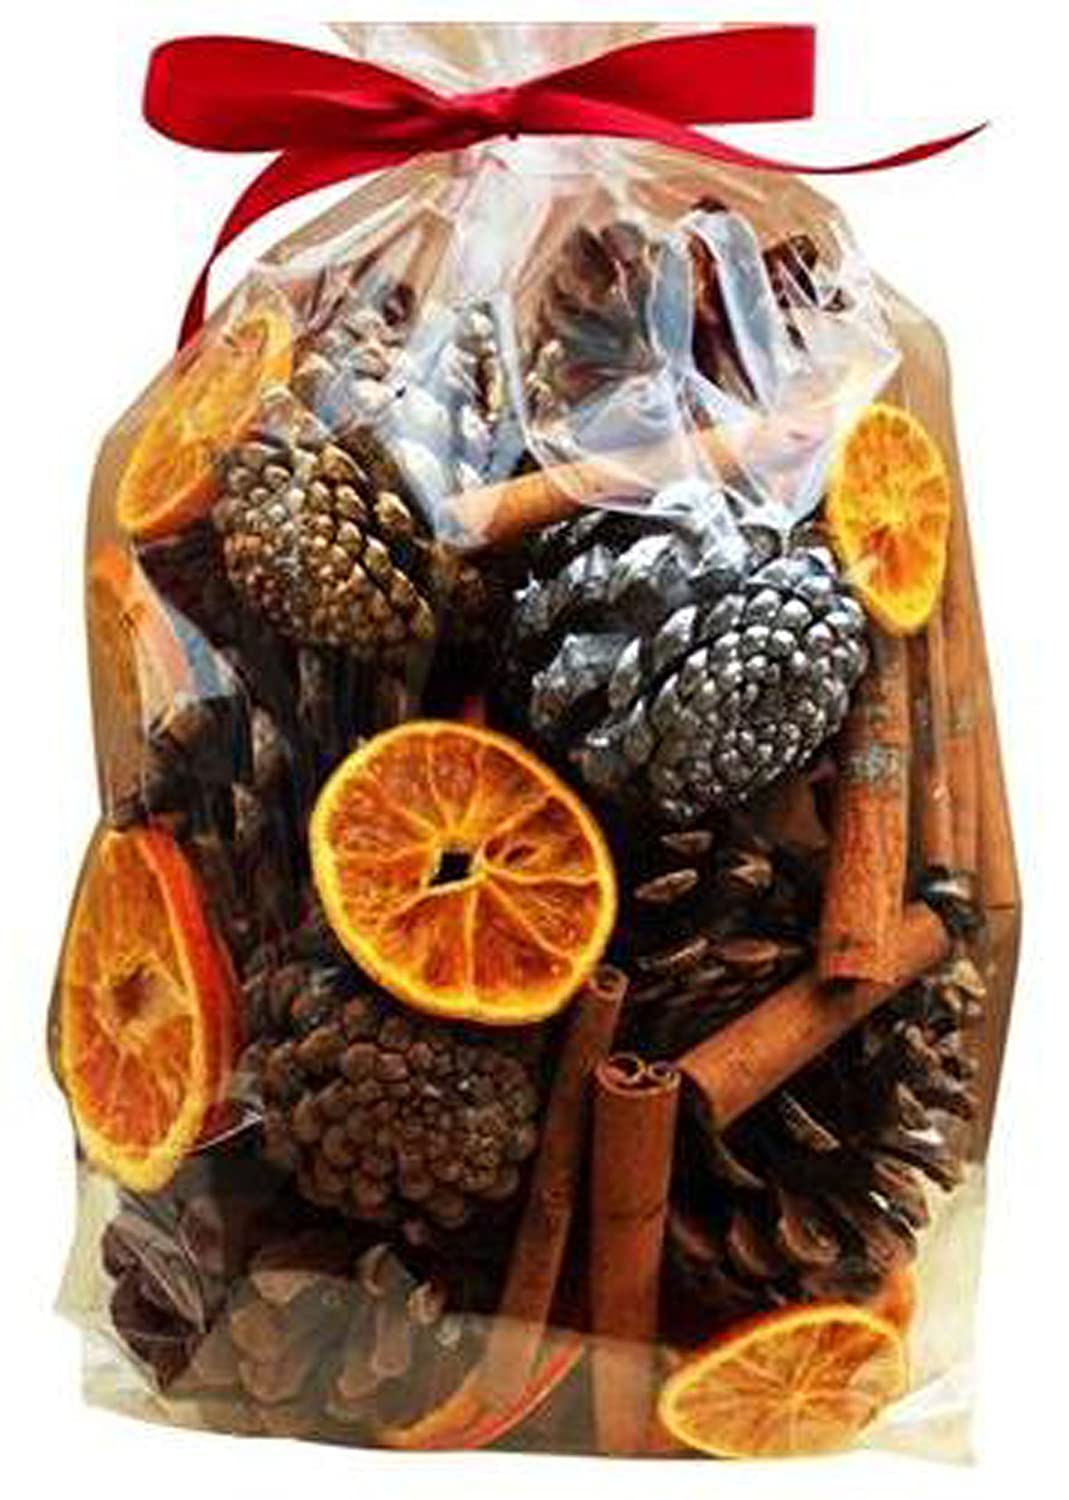 Christmas Decorations Pot Pourri Gift Bag (500g): Pinecone, dried fruits, oranges and leaves, pine cones and cinnamon sticks Avena Christmas